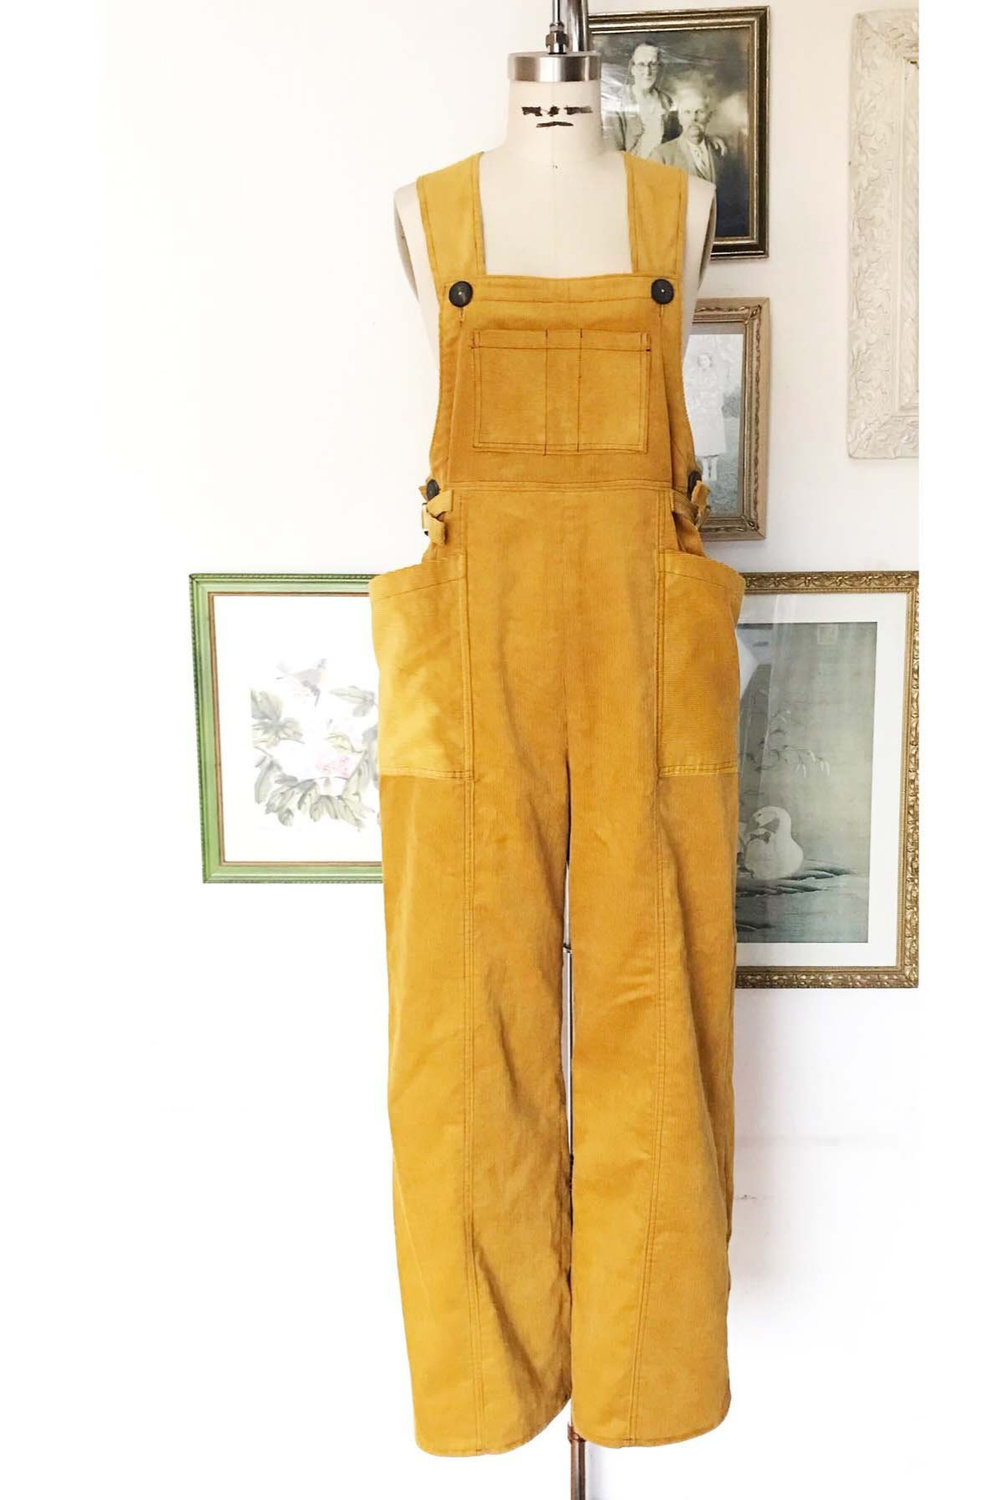 Ophelia Overalls from Decades of Style